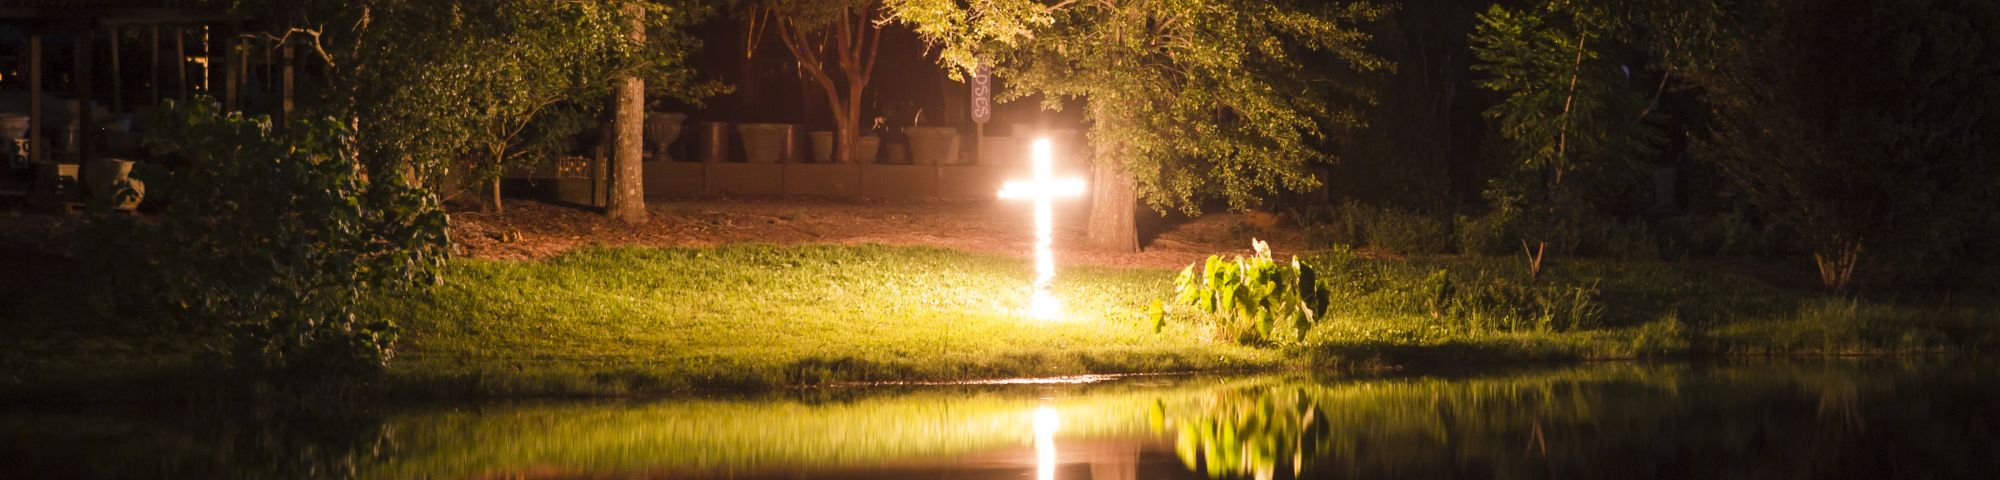 a cross on fire reflected on a lake